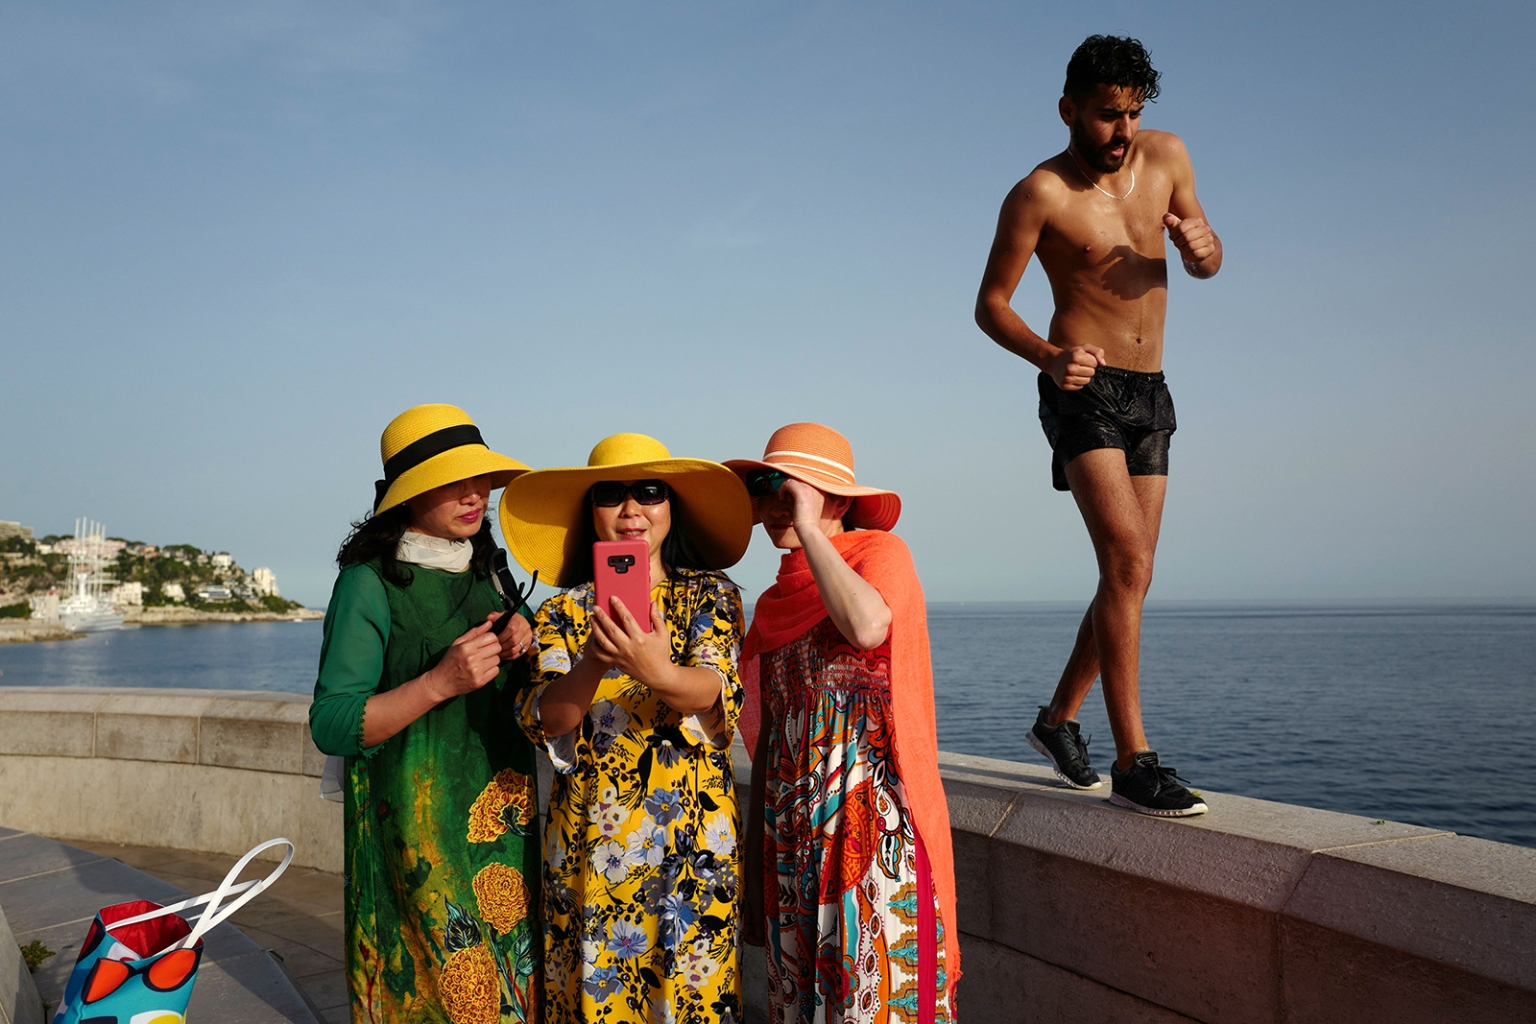 A man walks by as tourists take selfies in the French Riviera city of Nice as temperatures soar above 90 degrees Fahrenheit on June 24. VALERY HACHE/AFP/Getty Images